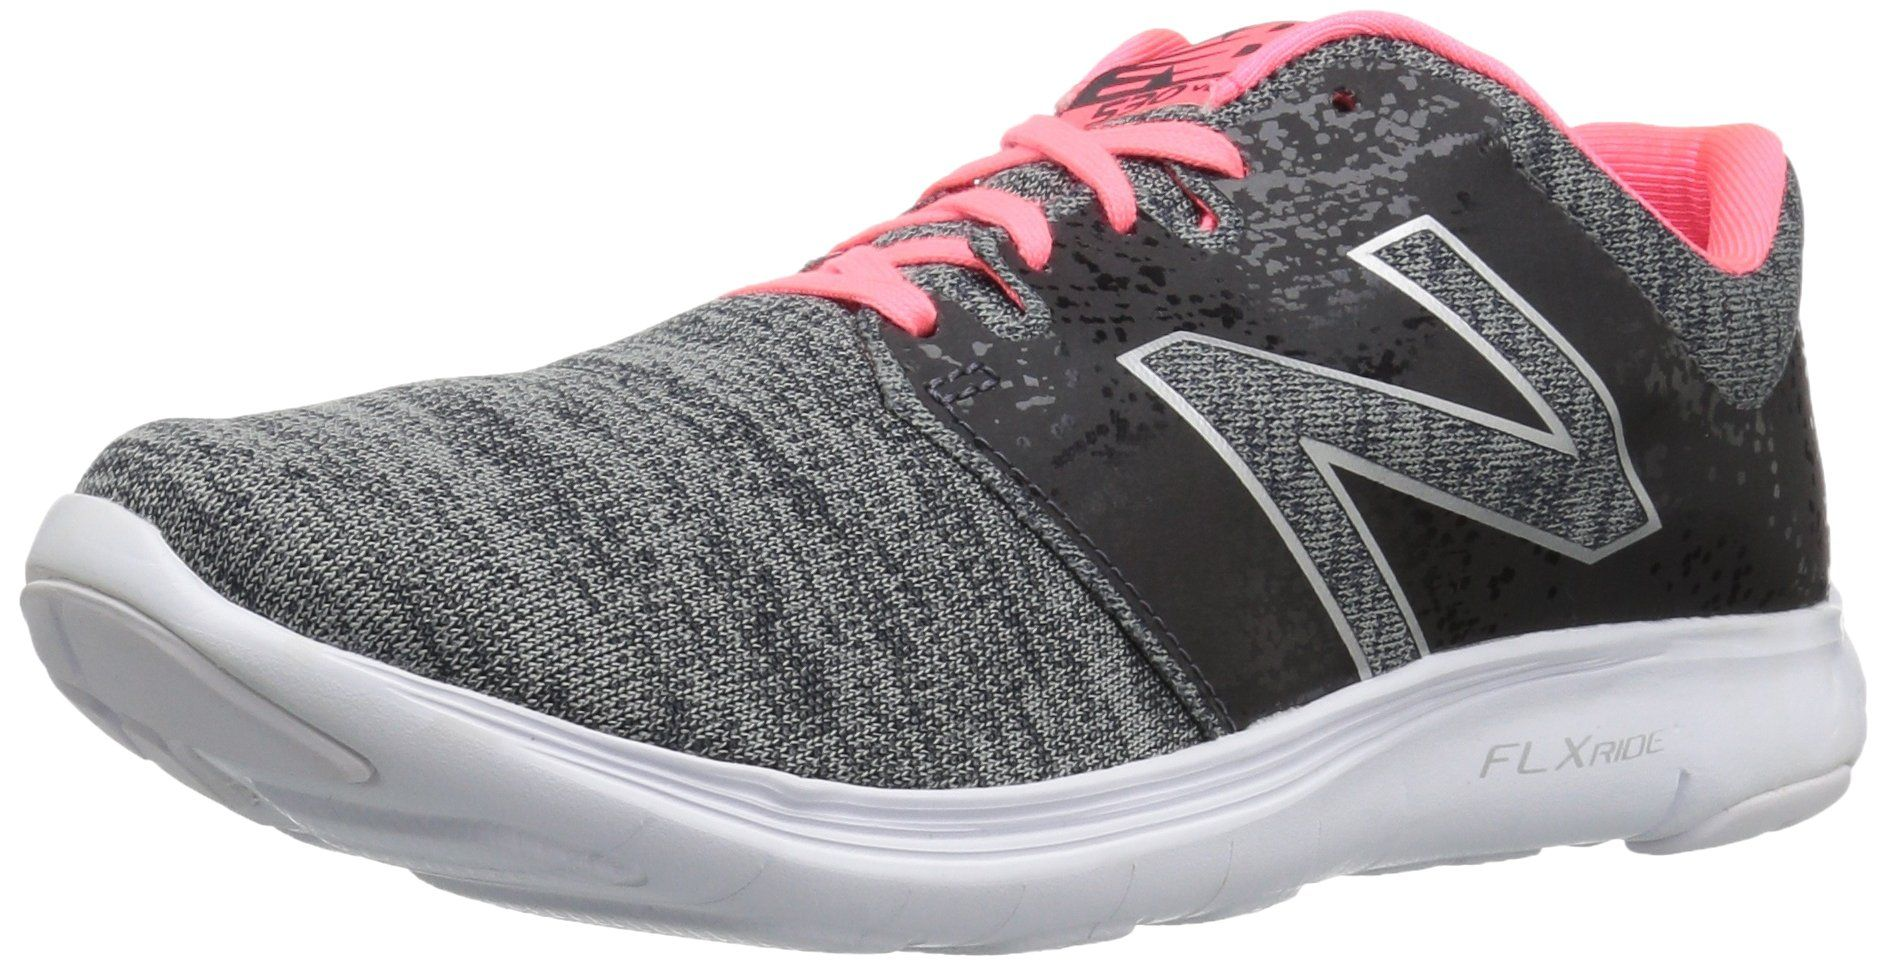 new style 59eae e2a20 New Balance Womens w530v2 Running Shoes, Dark Grey, 10 B US. Removable  insole